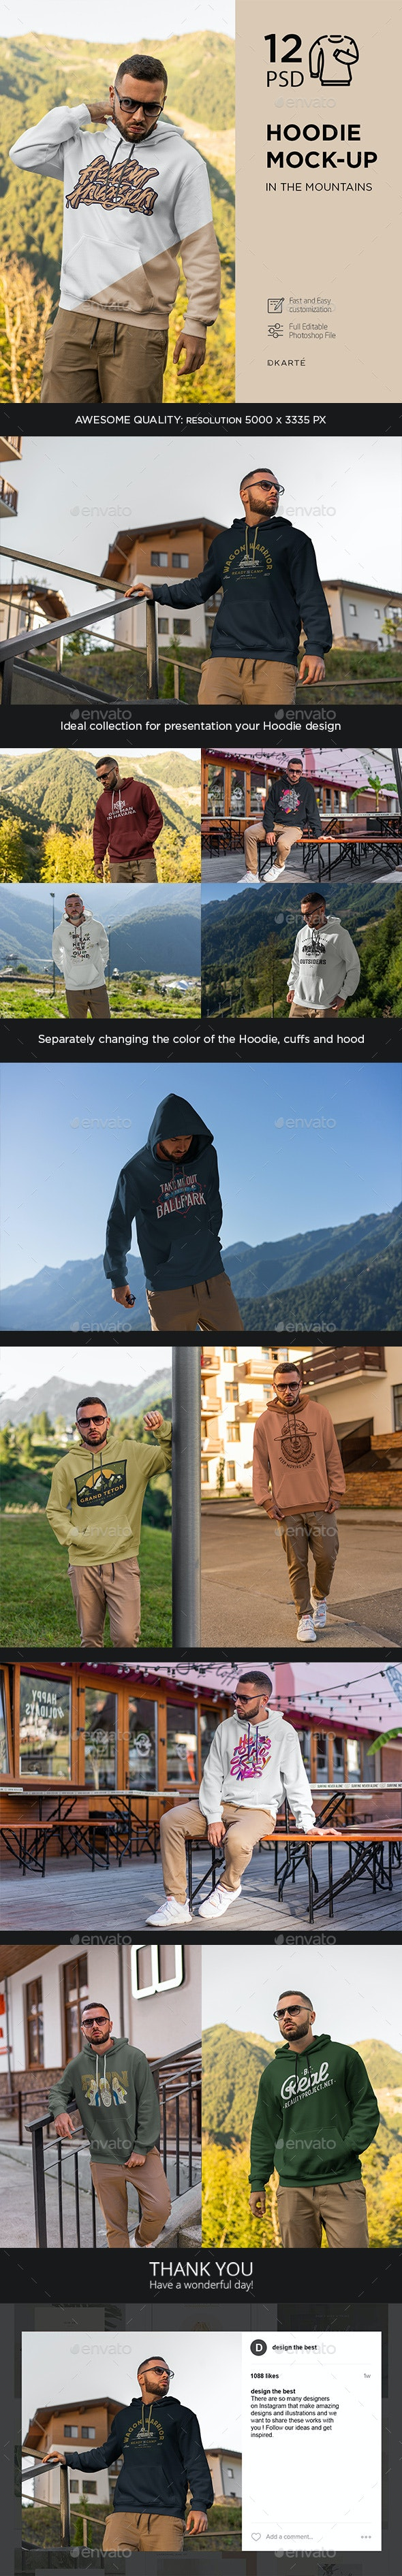 Hoodie Mock-Up In Mountains - Apparel Product Mock-Ups